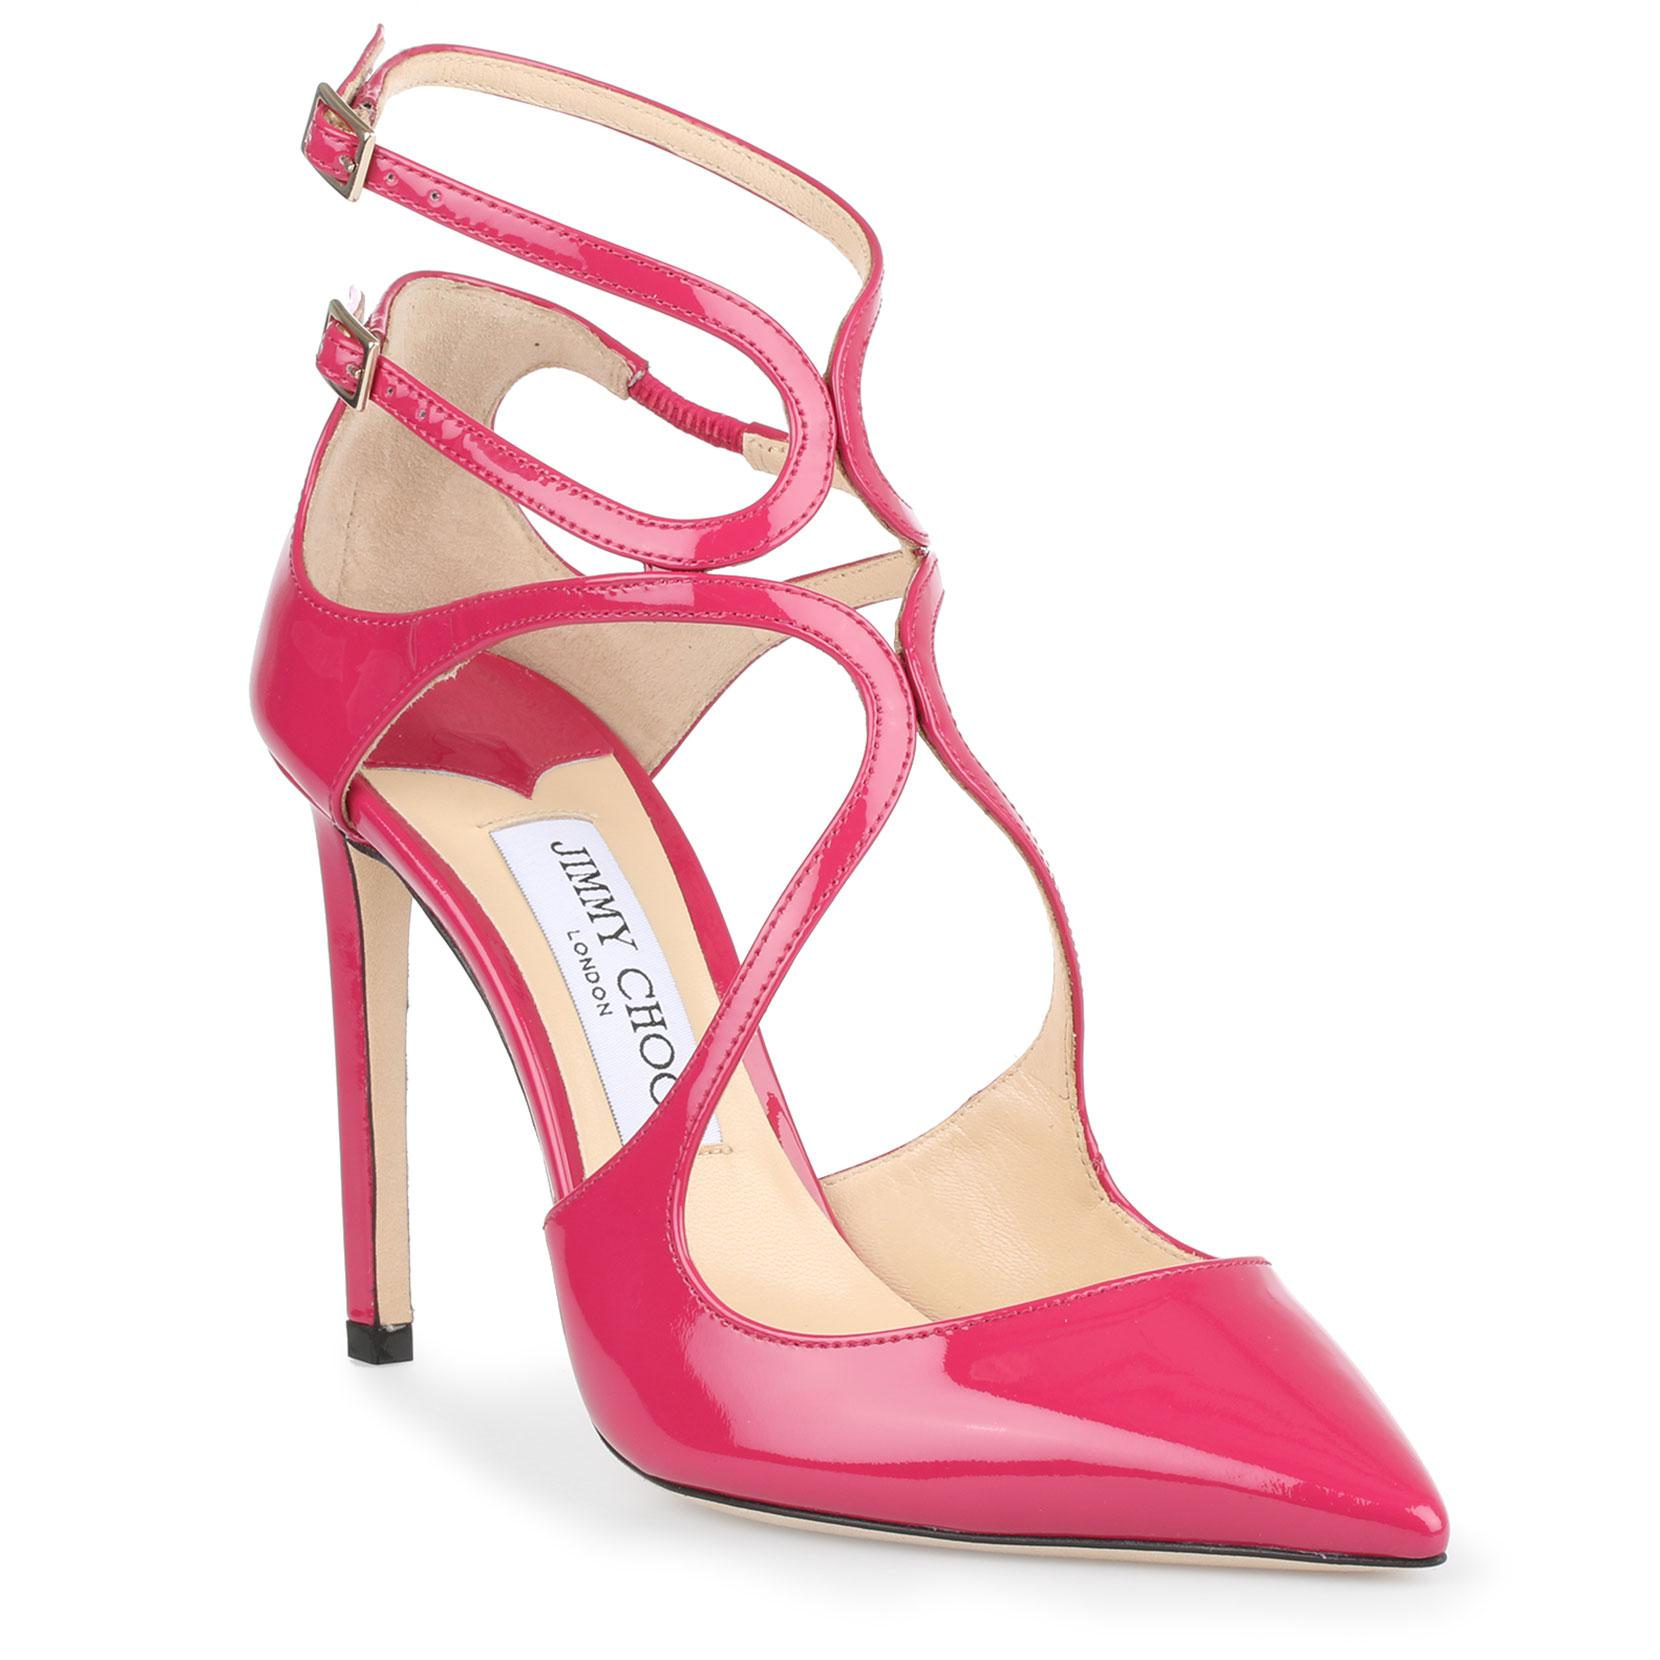 Lancer 100 patent cerise pumps Jimmy Choo London aoNHAwwd